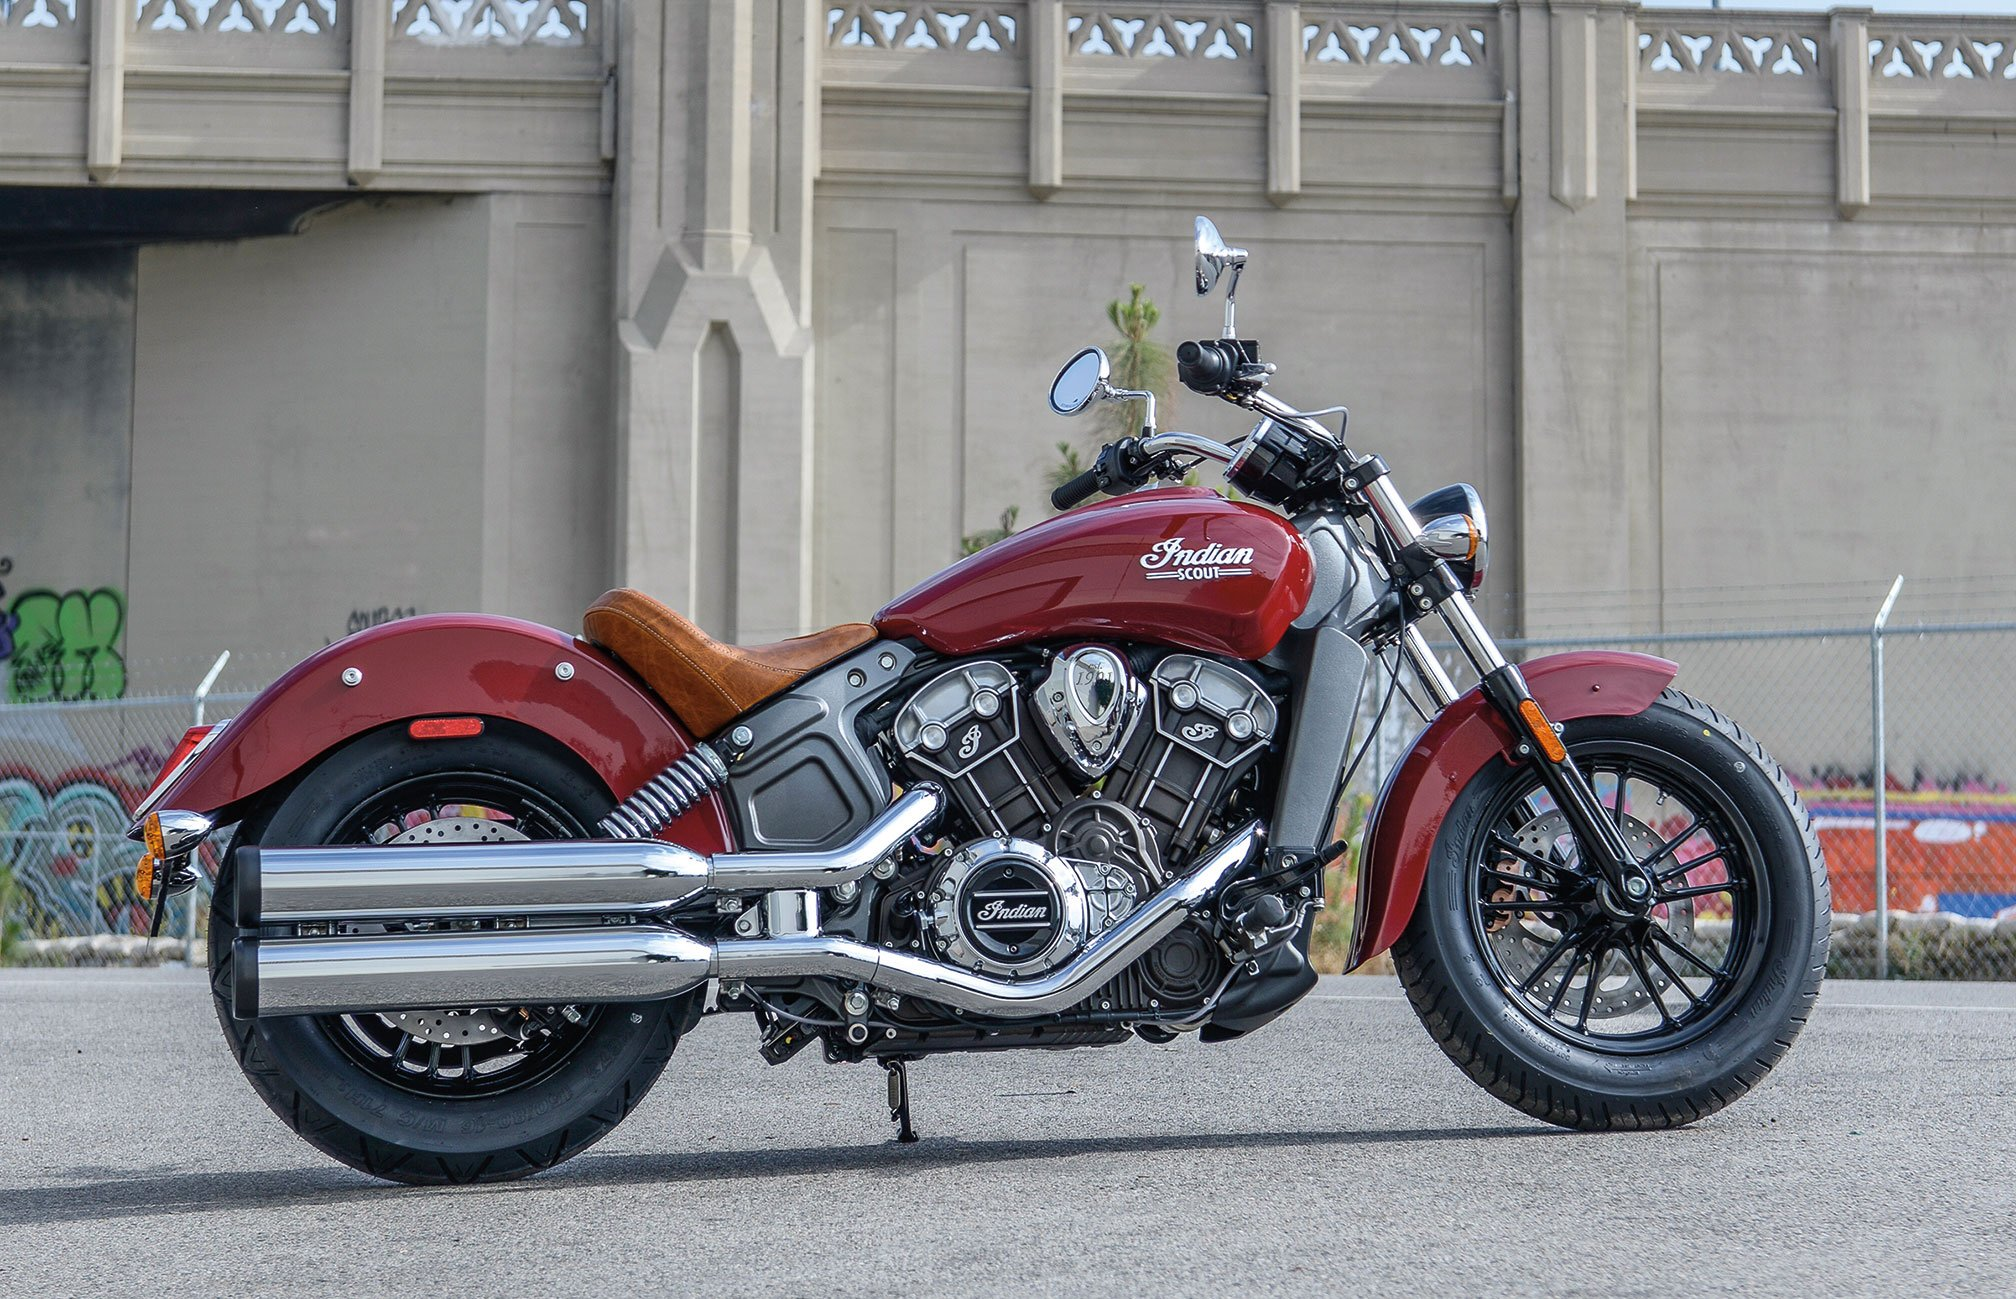 2016 indian scout wallpaper - wallpapersafari